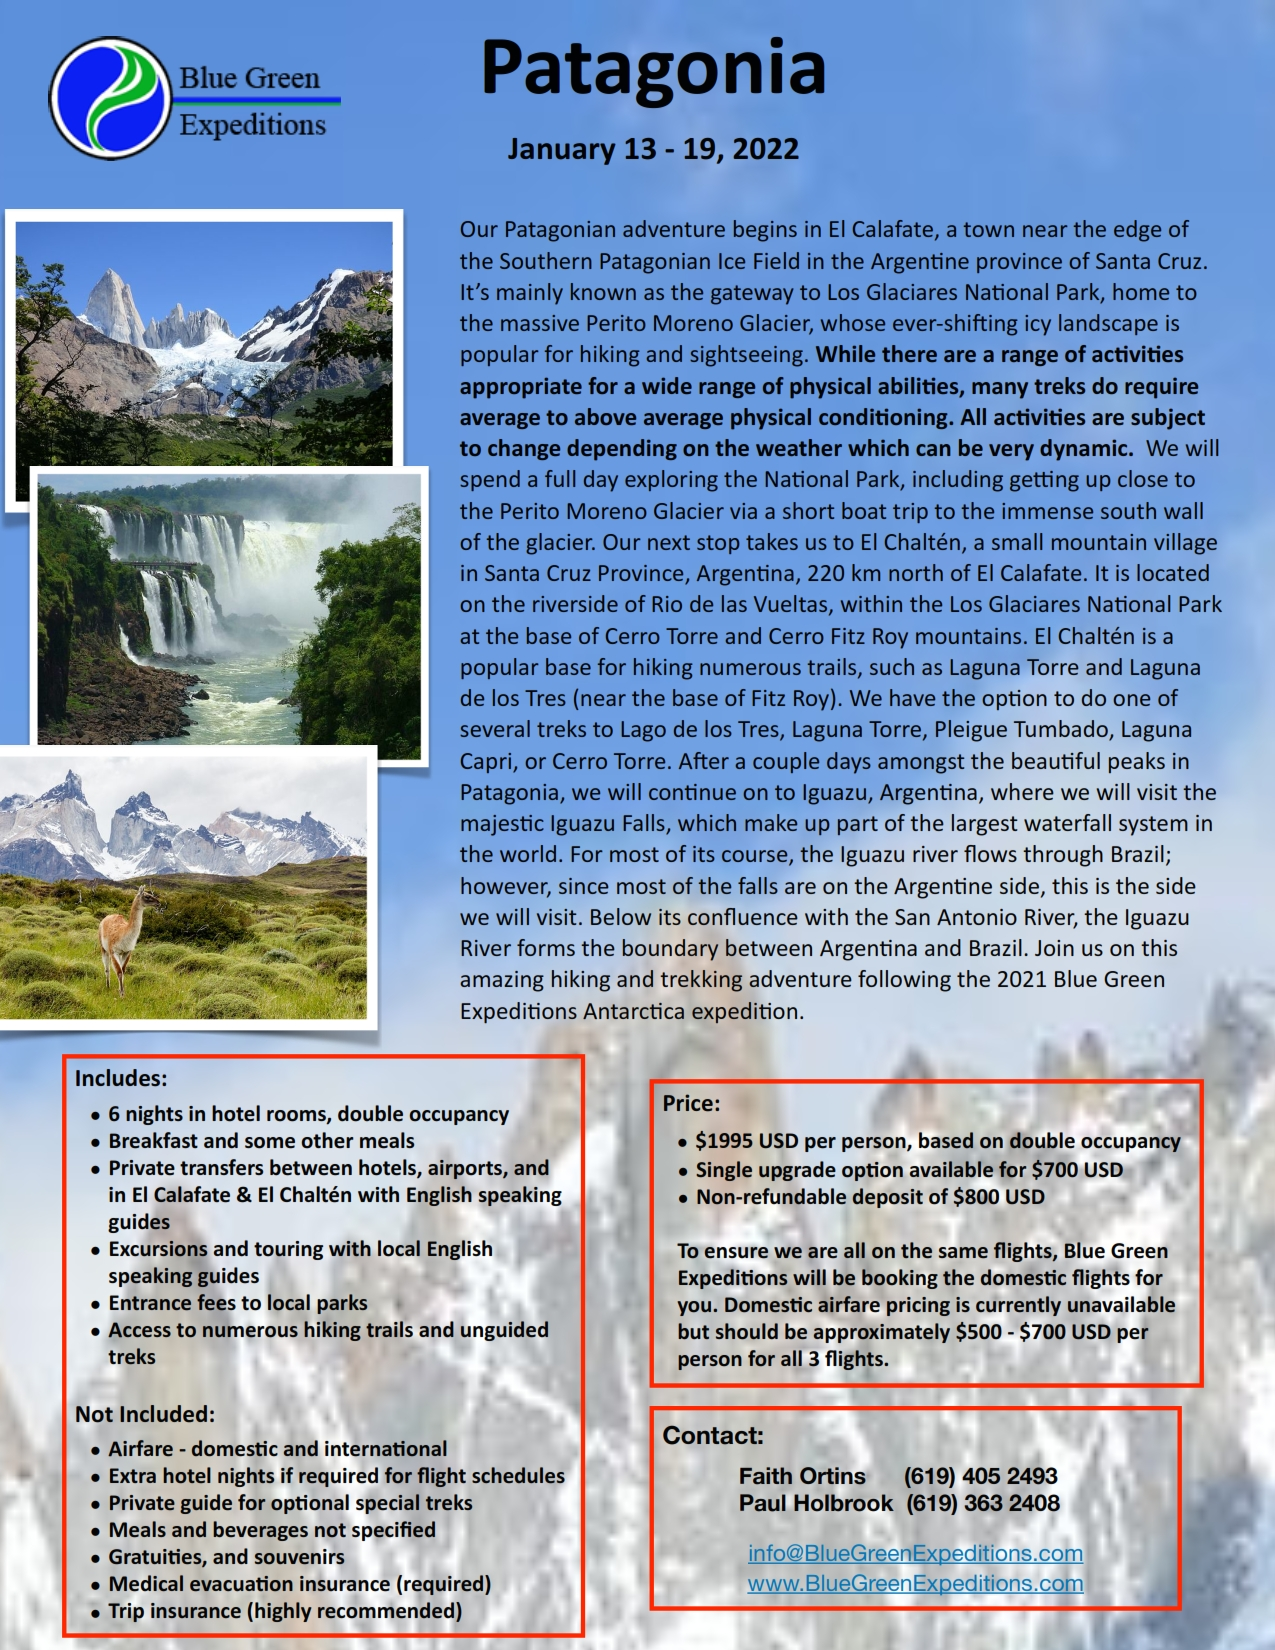 Patagonia Expedition, January 13 - 19, 2022. Expedition description and pricing. PDF flyer contains the same information.